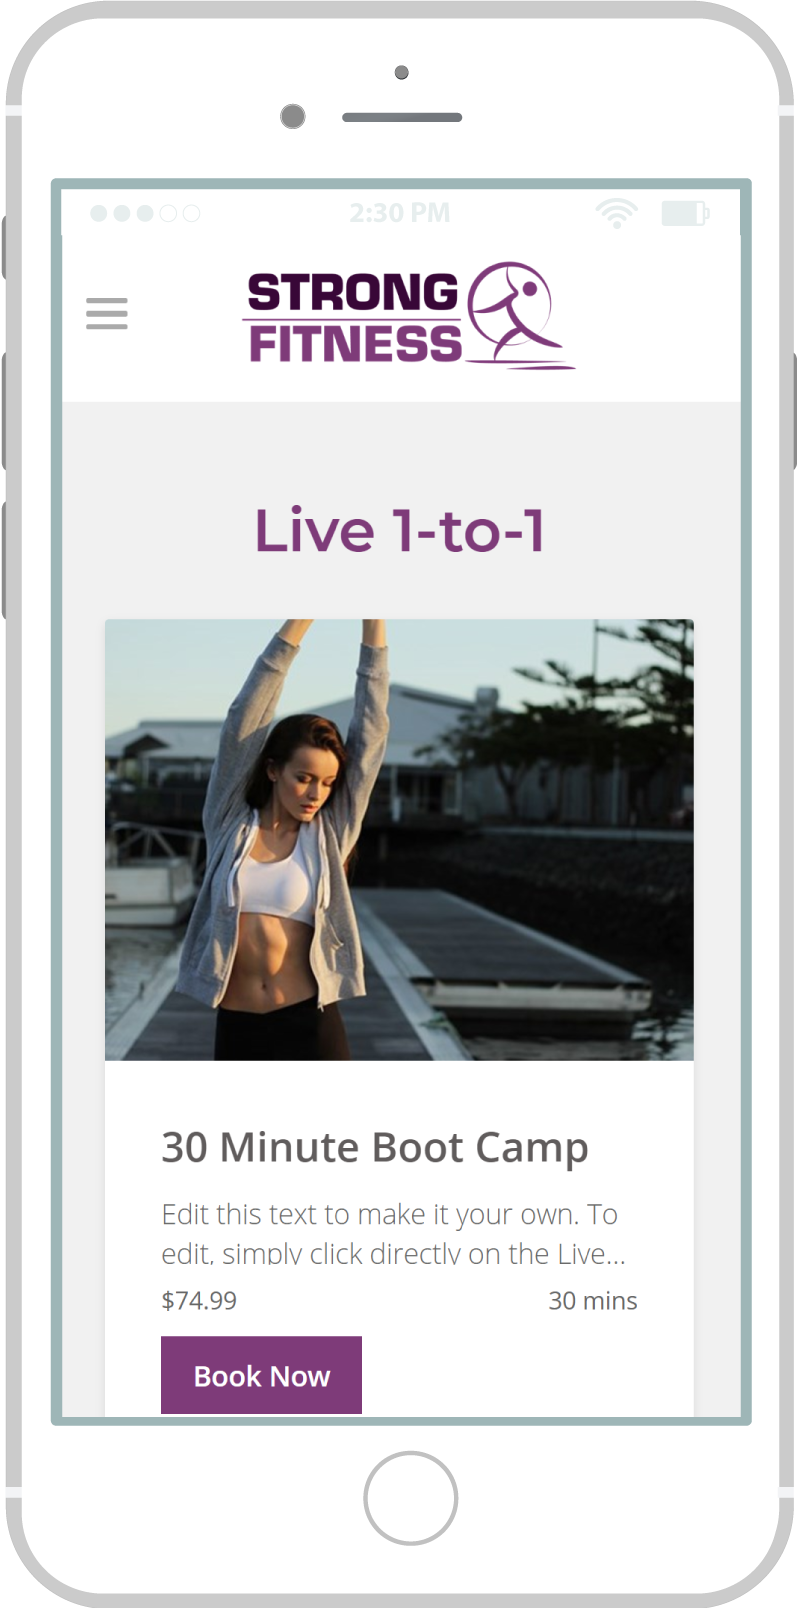 All-In-One Online Fitness Studio Website - Strong Fitness Mobile view 3 Example